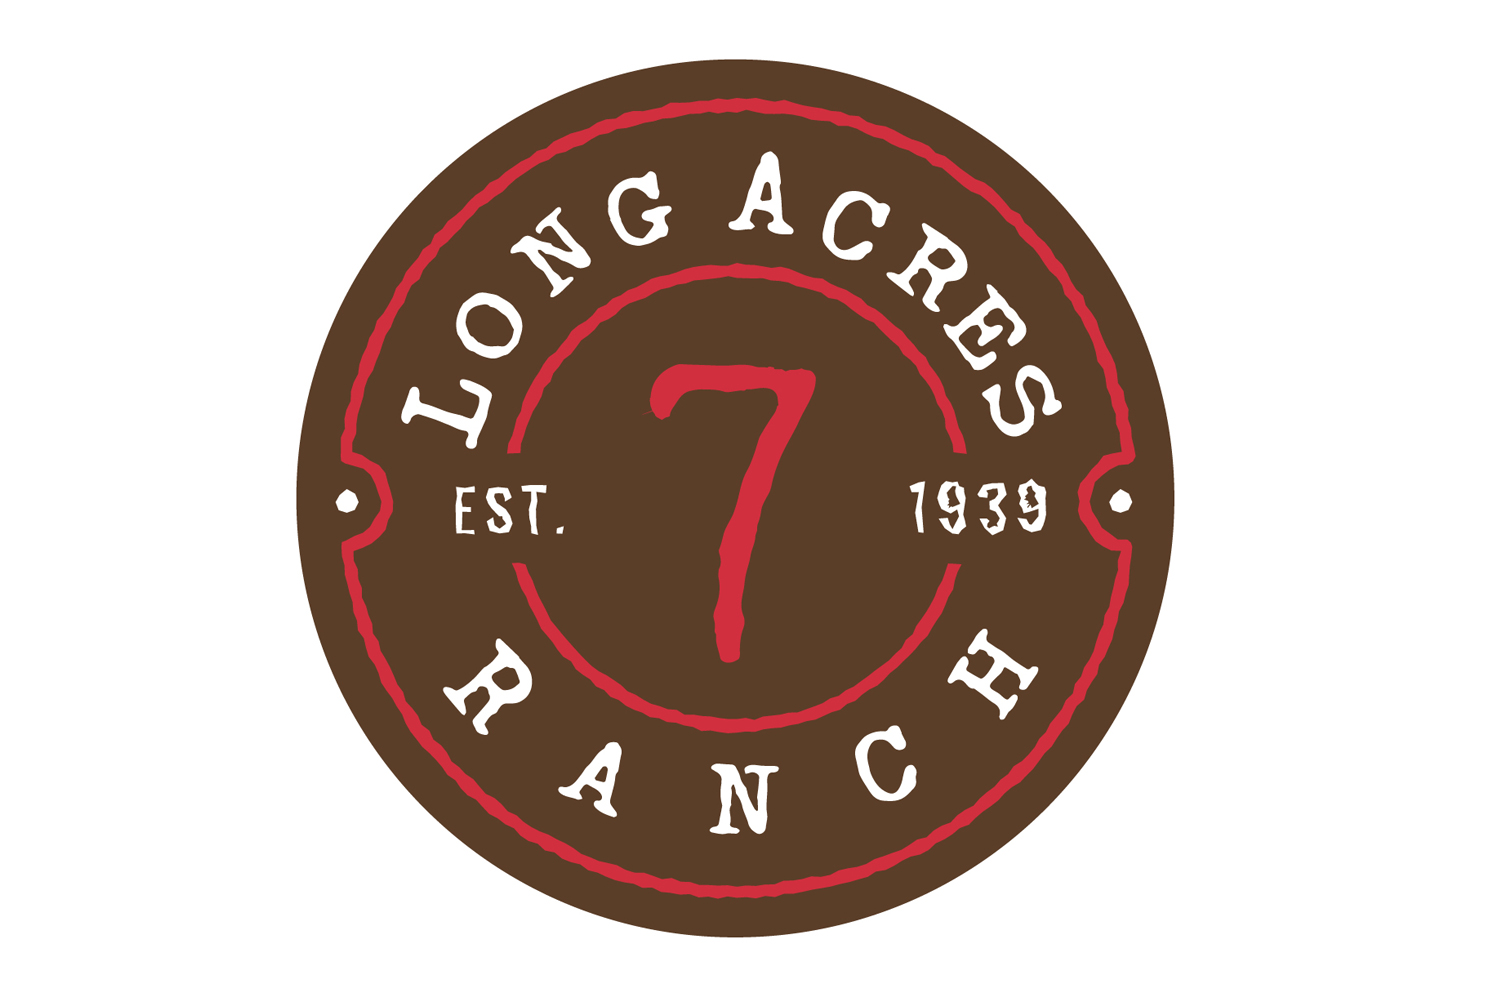 Long Acres Ranch Logo Design